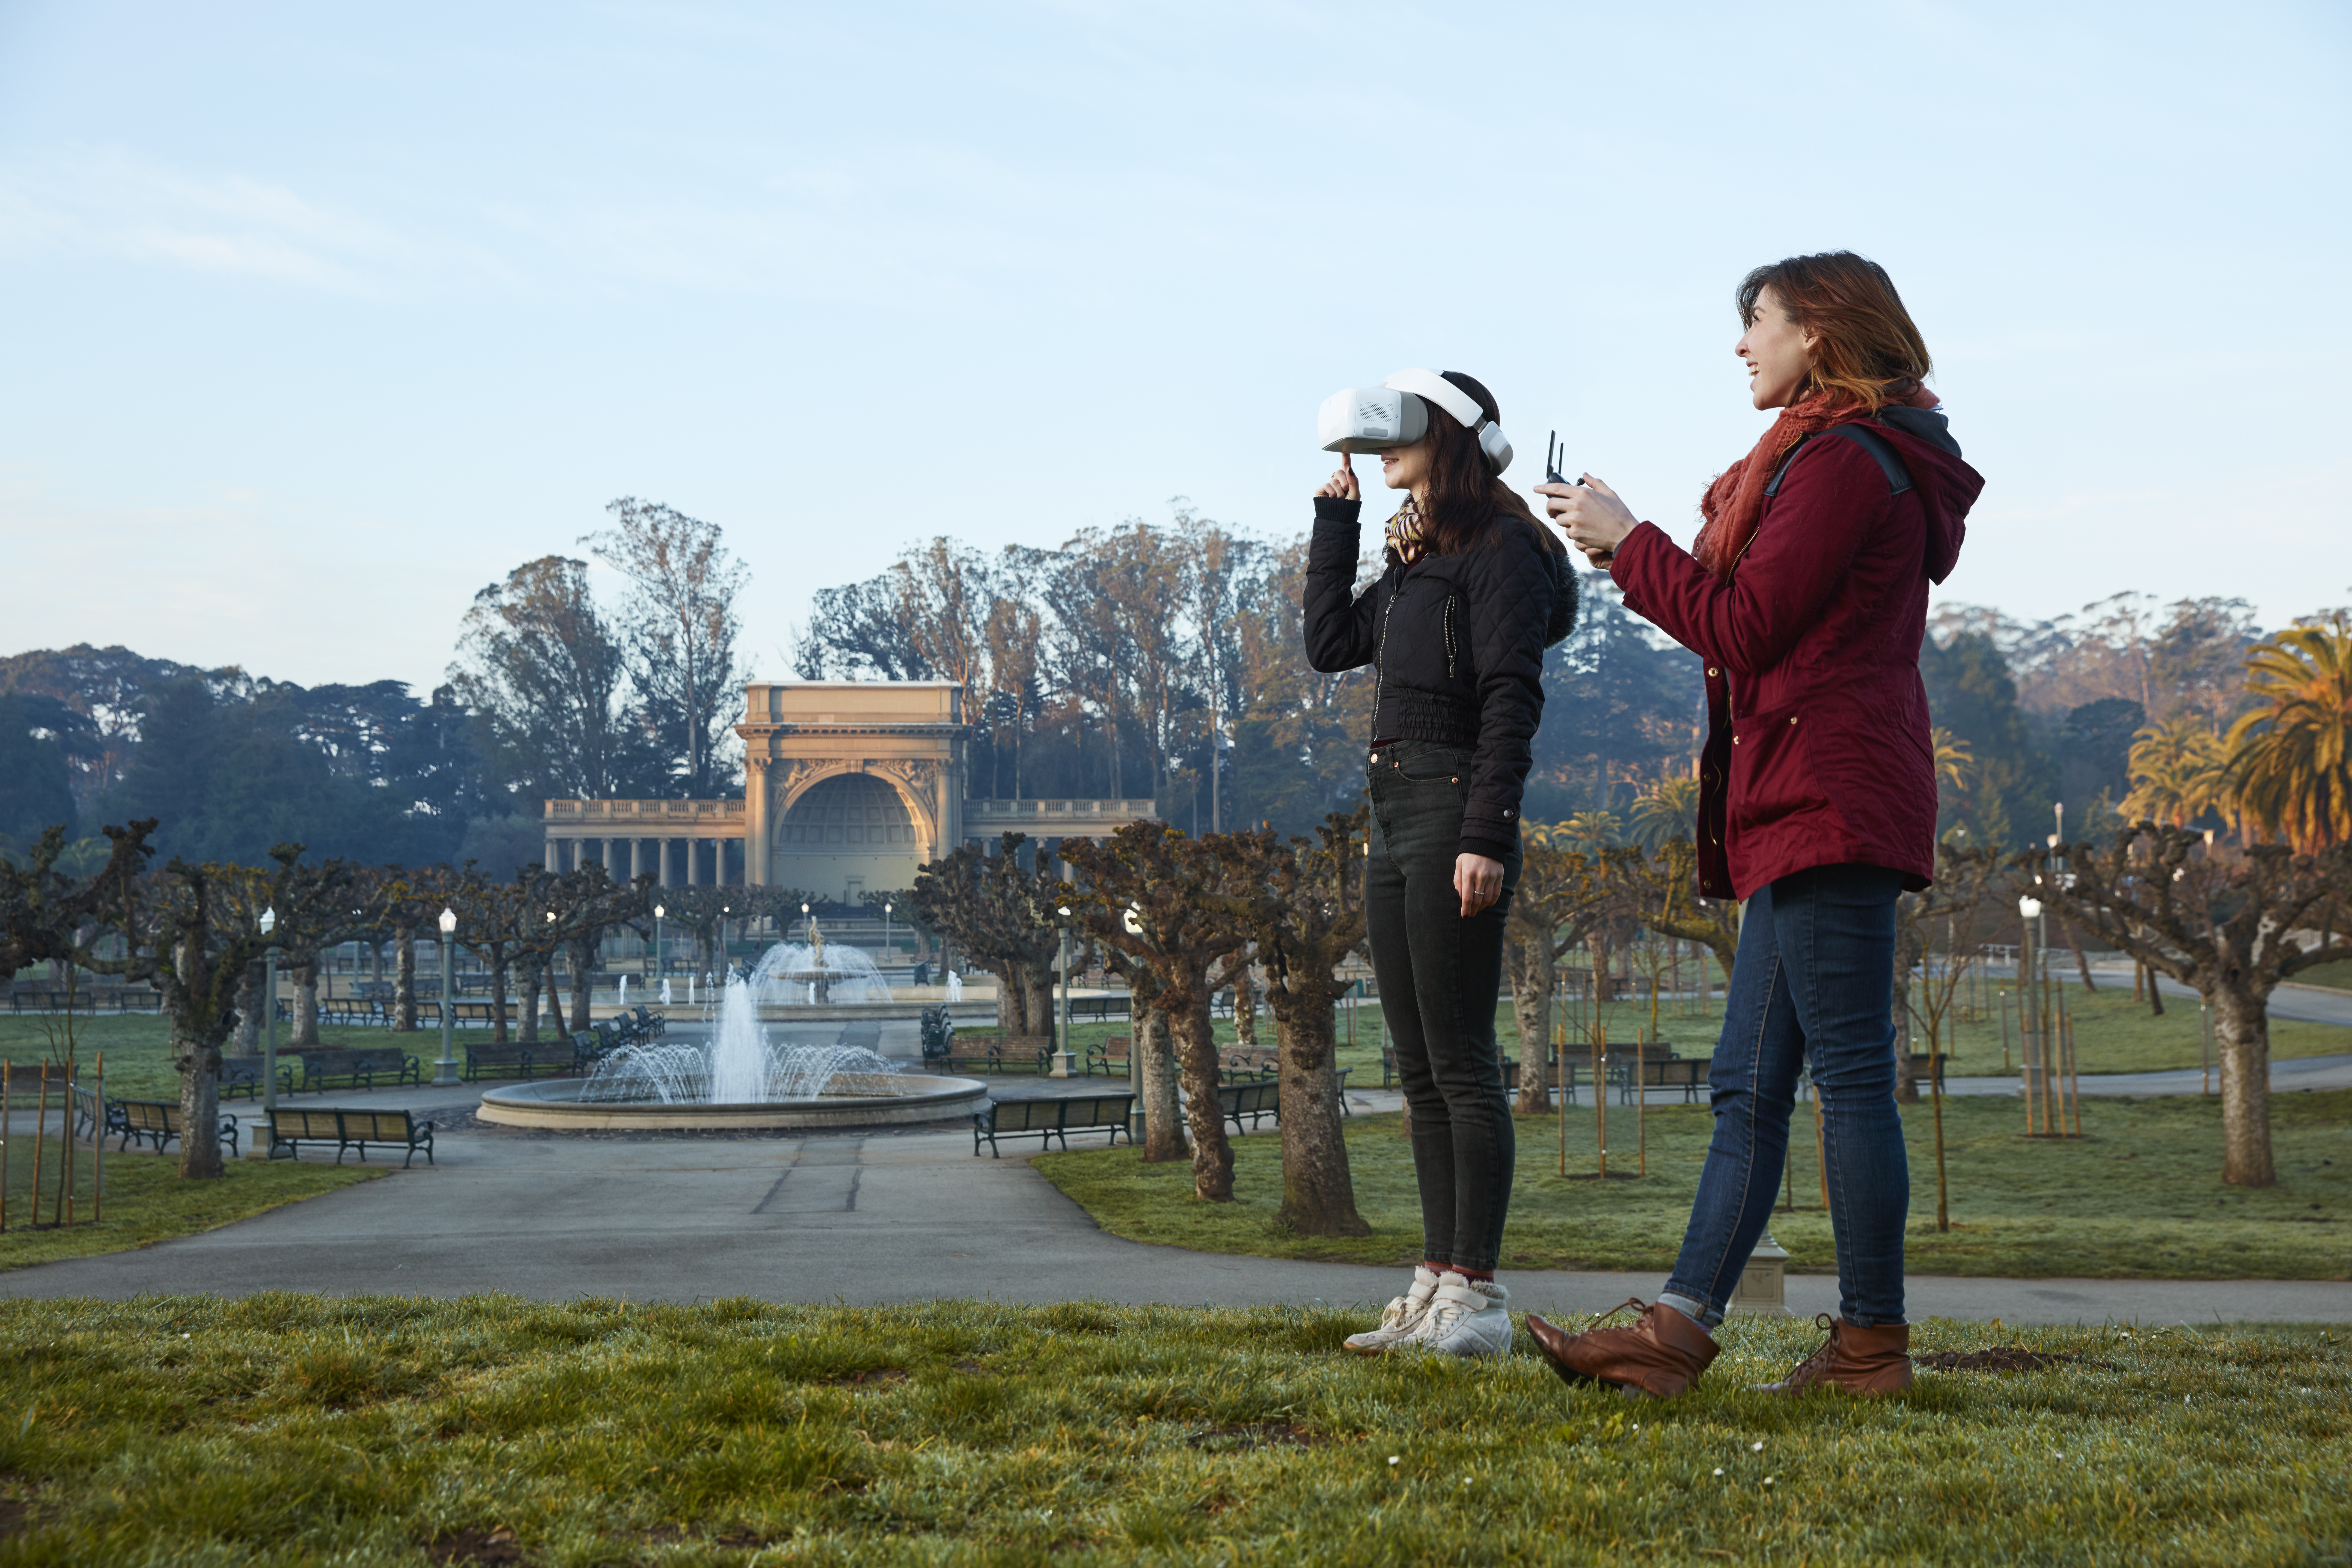 DJI Goggles bring FPV first person view to its Mavic, Phantom and Inspire drones